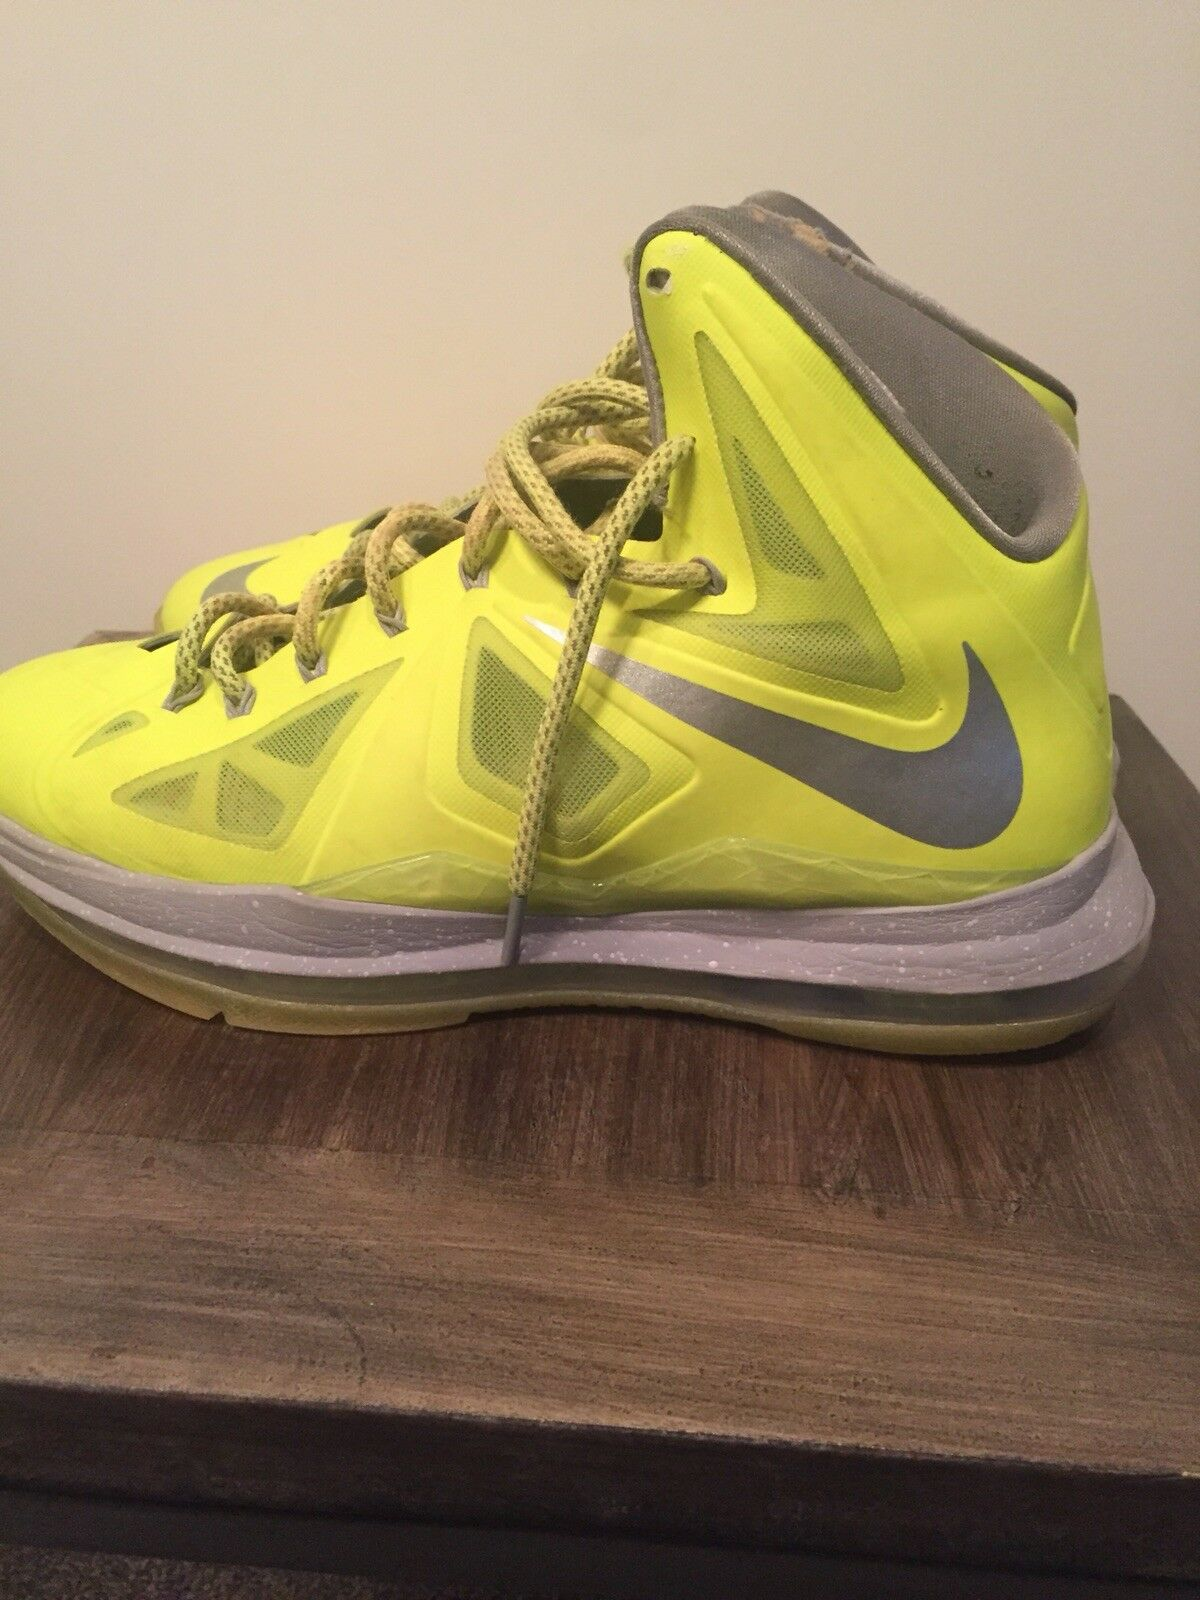 2012 Nike Lebron X 10 Size 10 Volt Grey Neon Basketball Shoe Nike Air